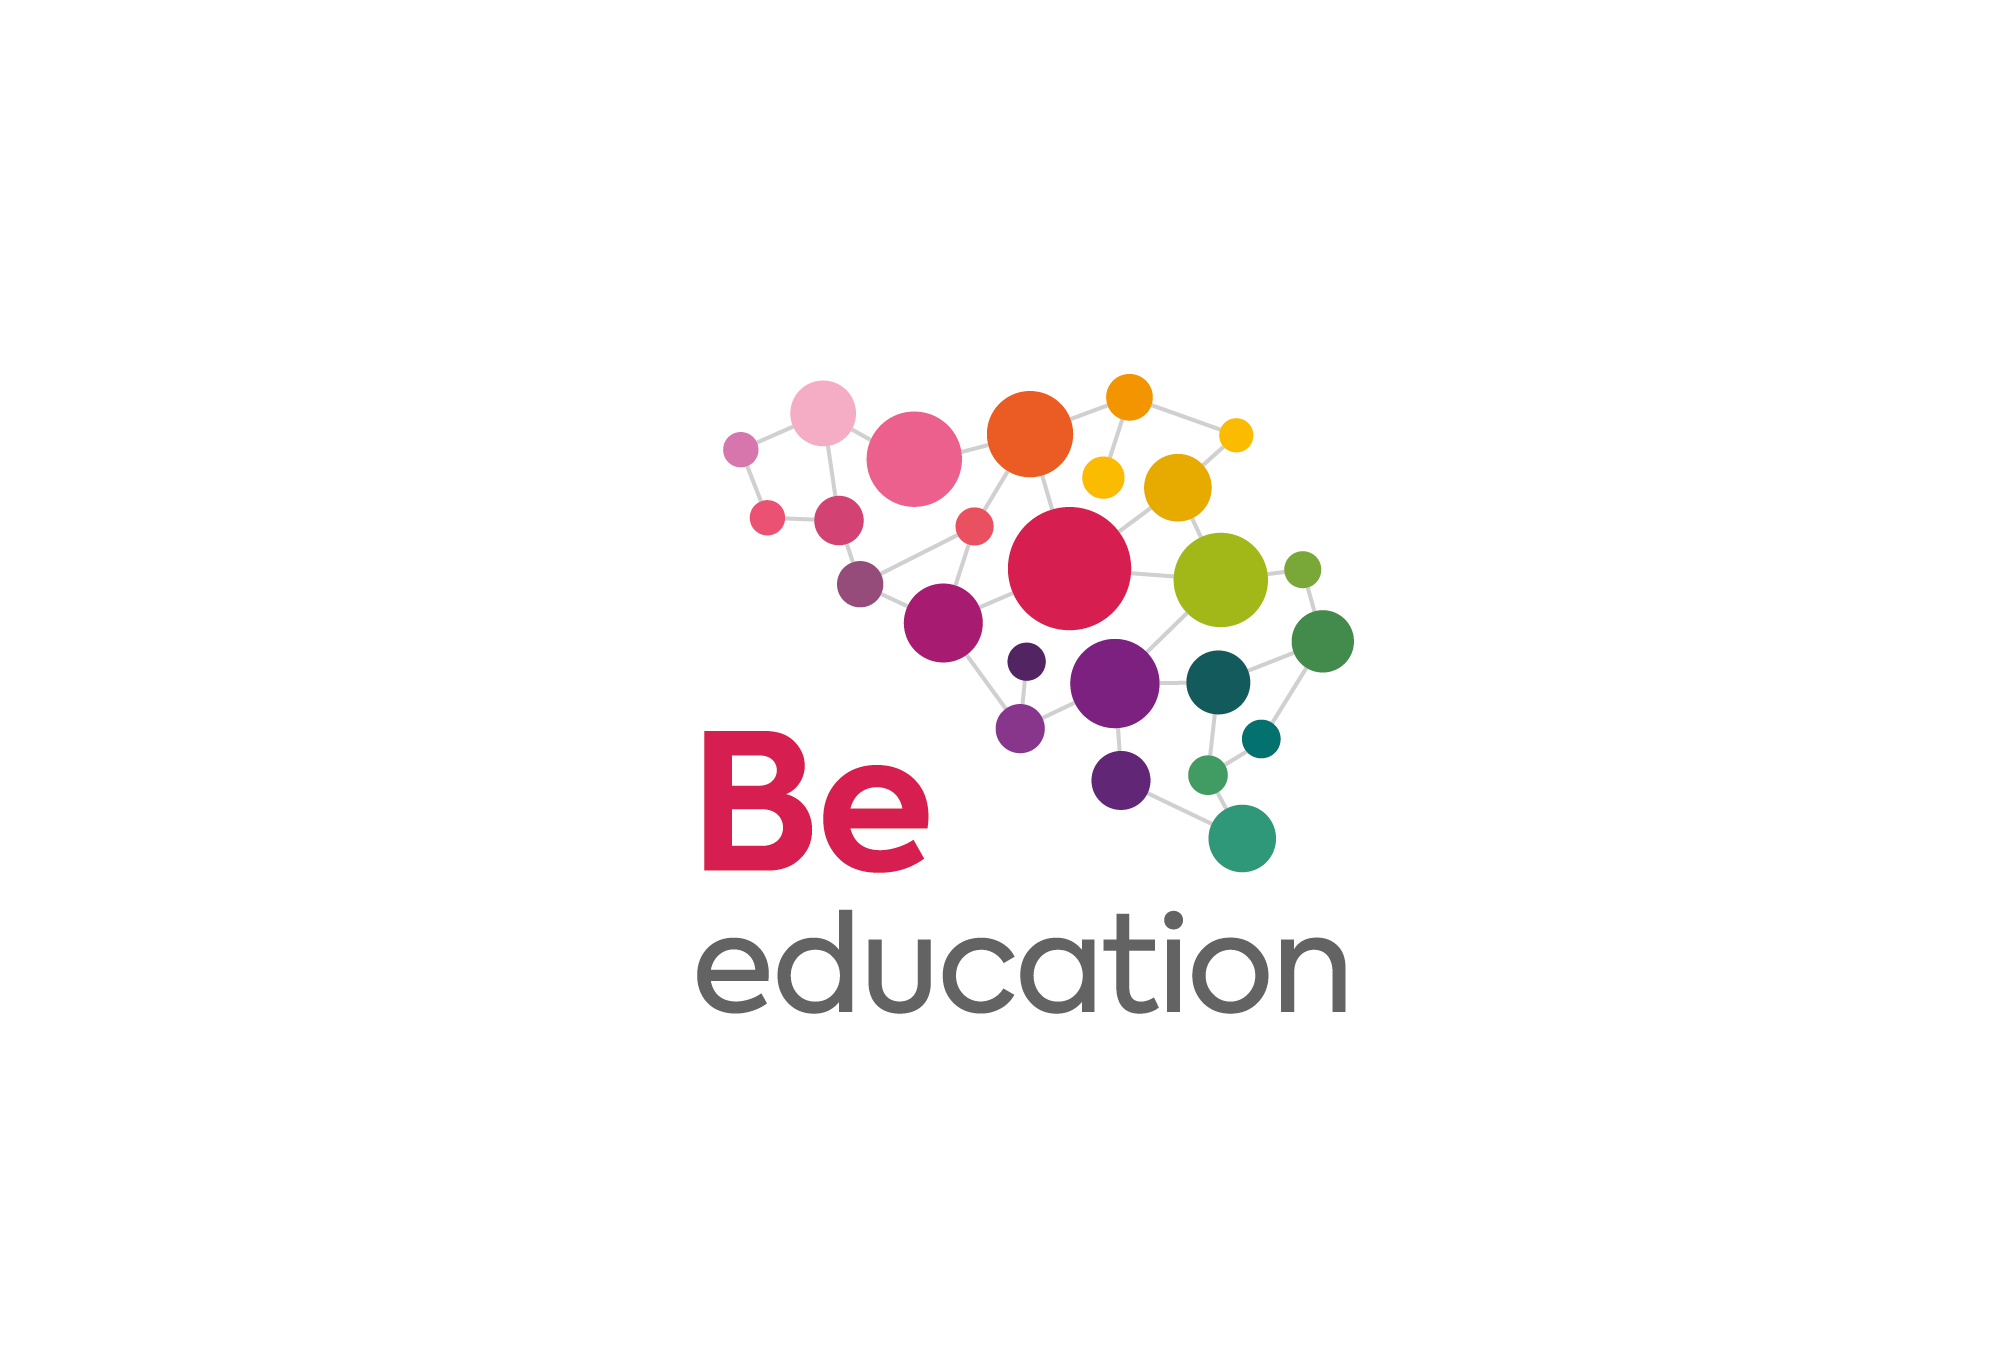 Be education